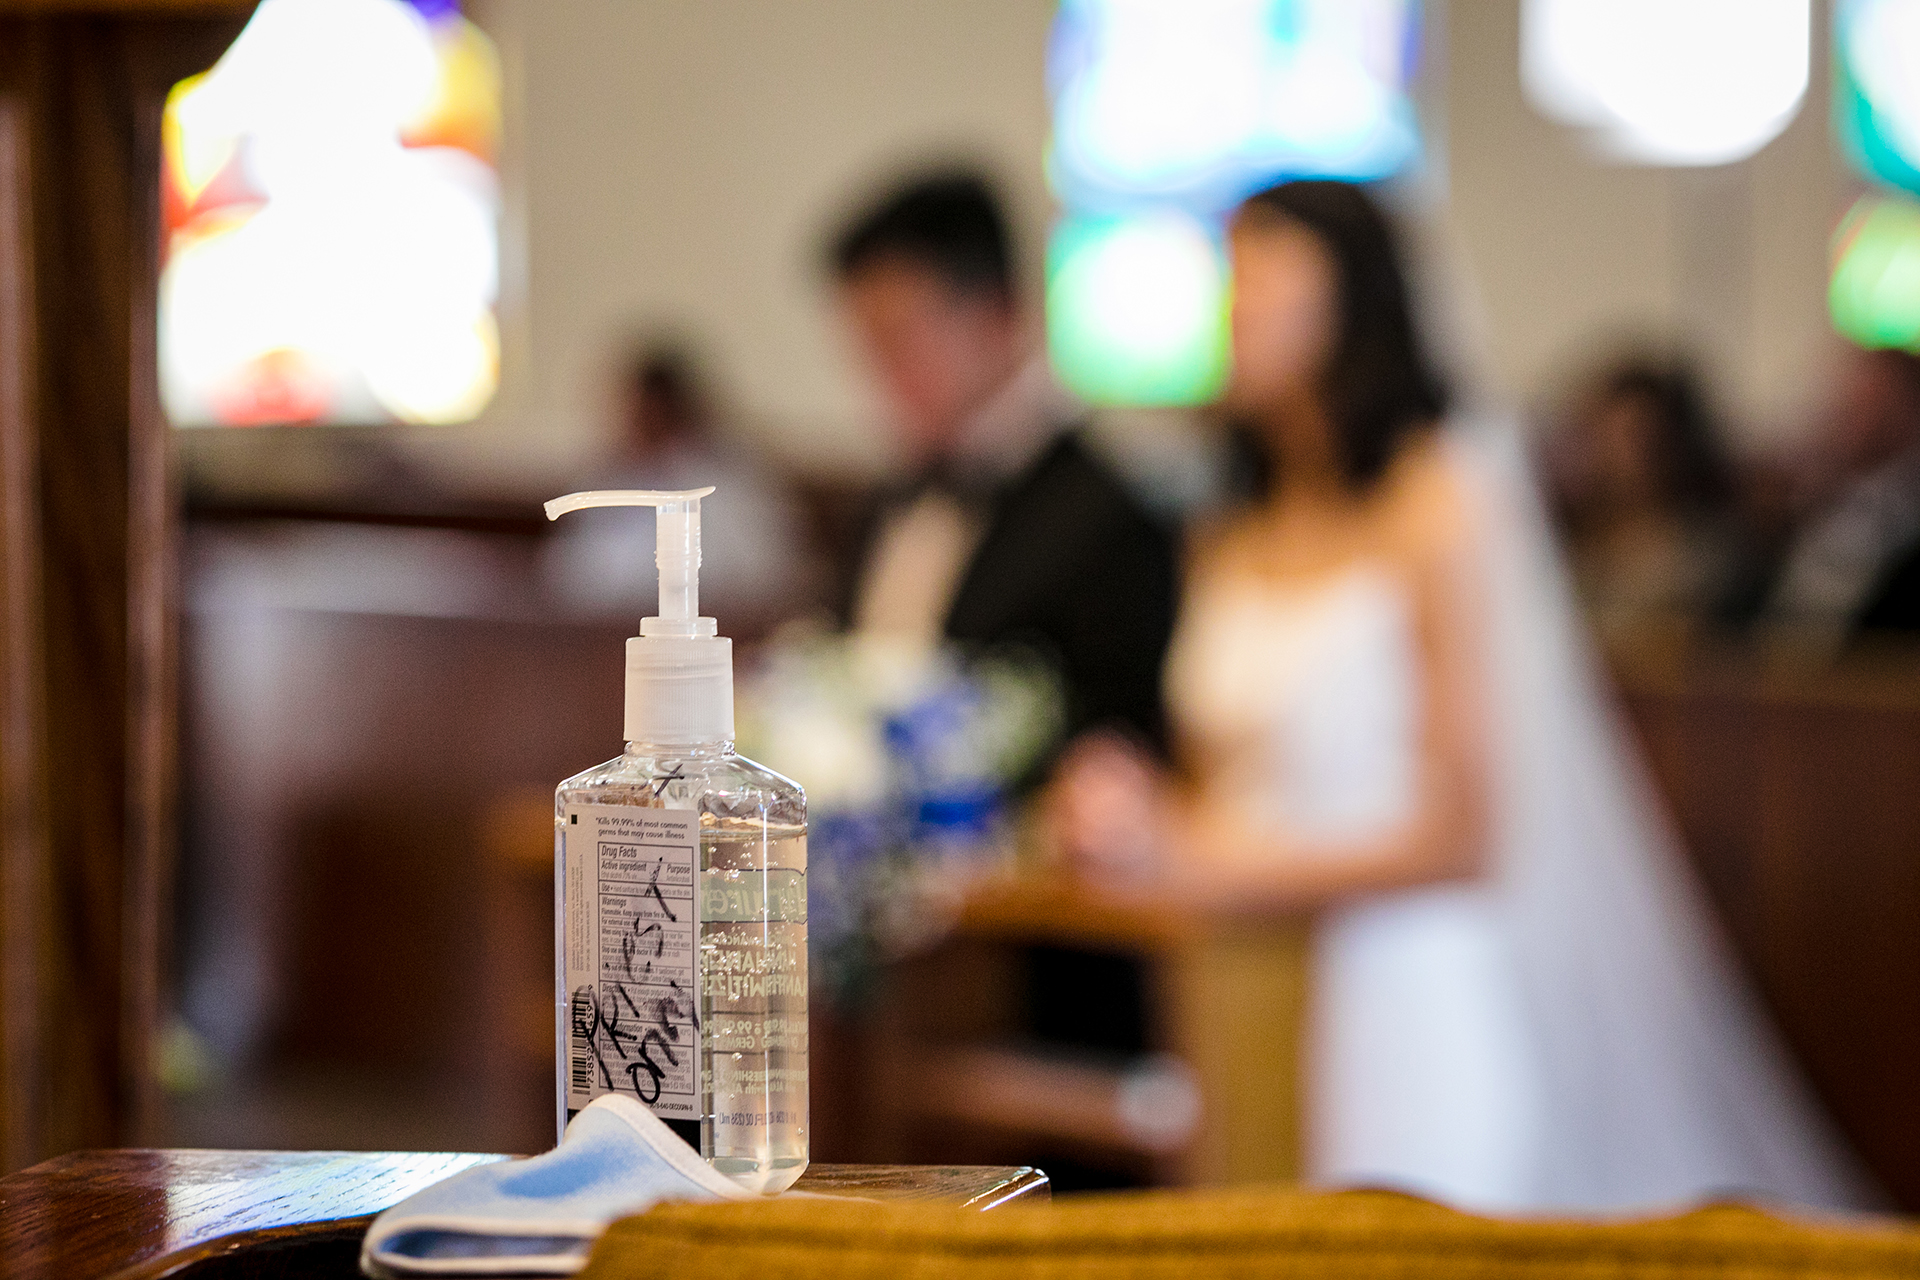 San Jose COVID wedding pictures | This detail shot of the priest's personal hand sanitizer and face mask